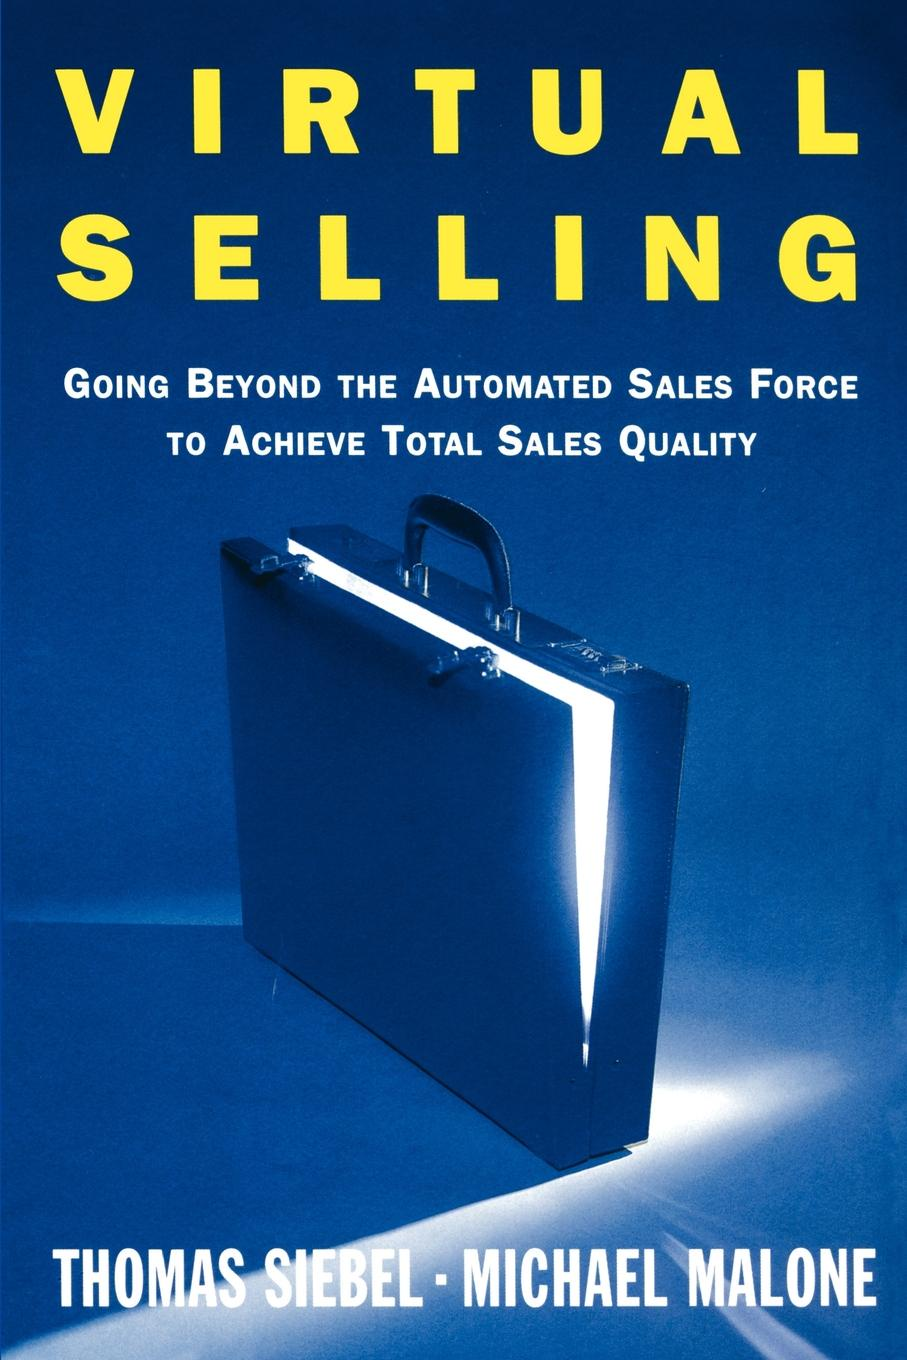 Thomas Siebel Virtual Selling. Going Beyond the Automated Sales Force to Achieve Total Sales Quality david jenkins whiteboard selling empowering sales through visuals